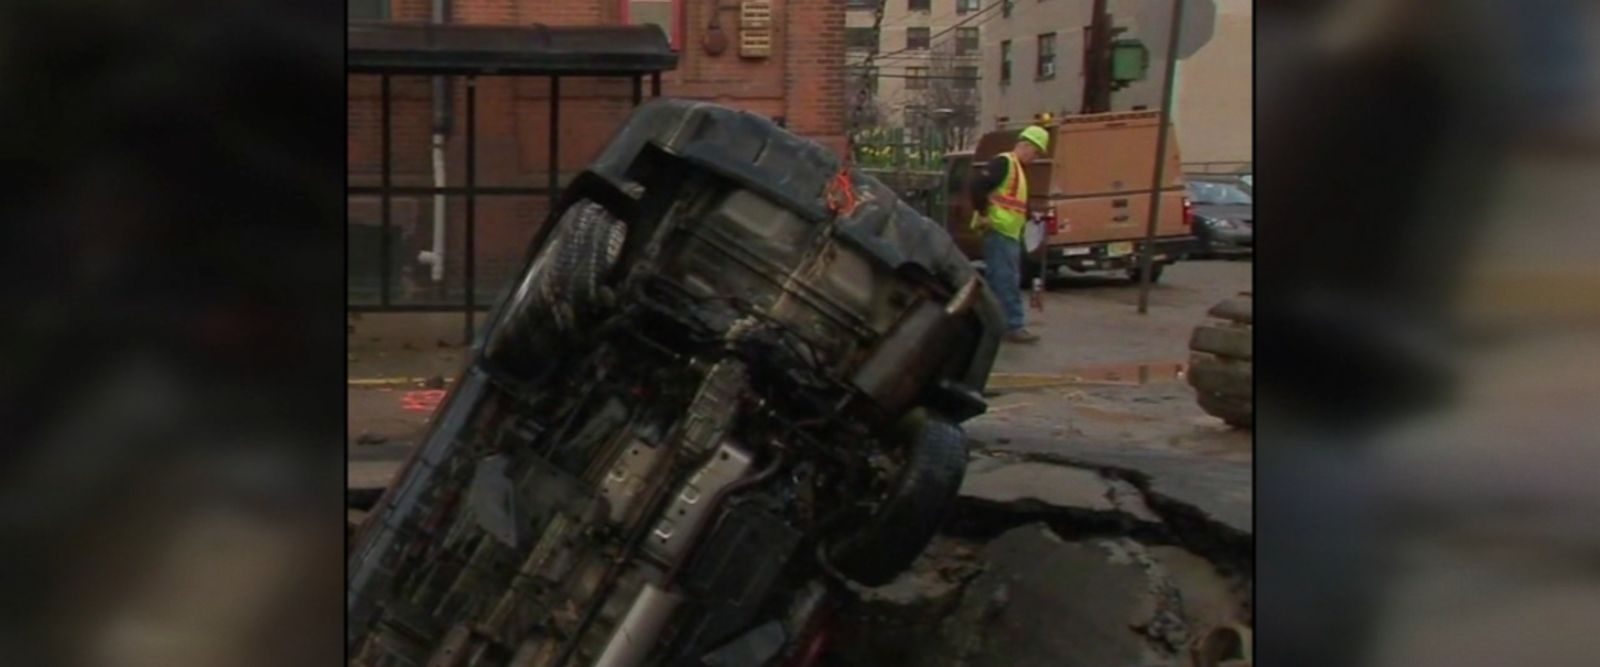 Water main break in Hoboken, New Jersey, creates sinkhole that swallows entire SUV.